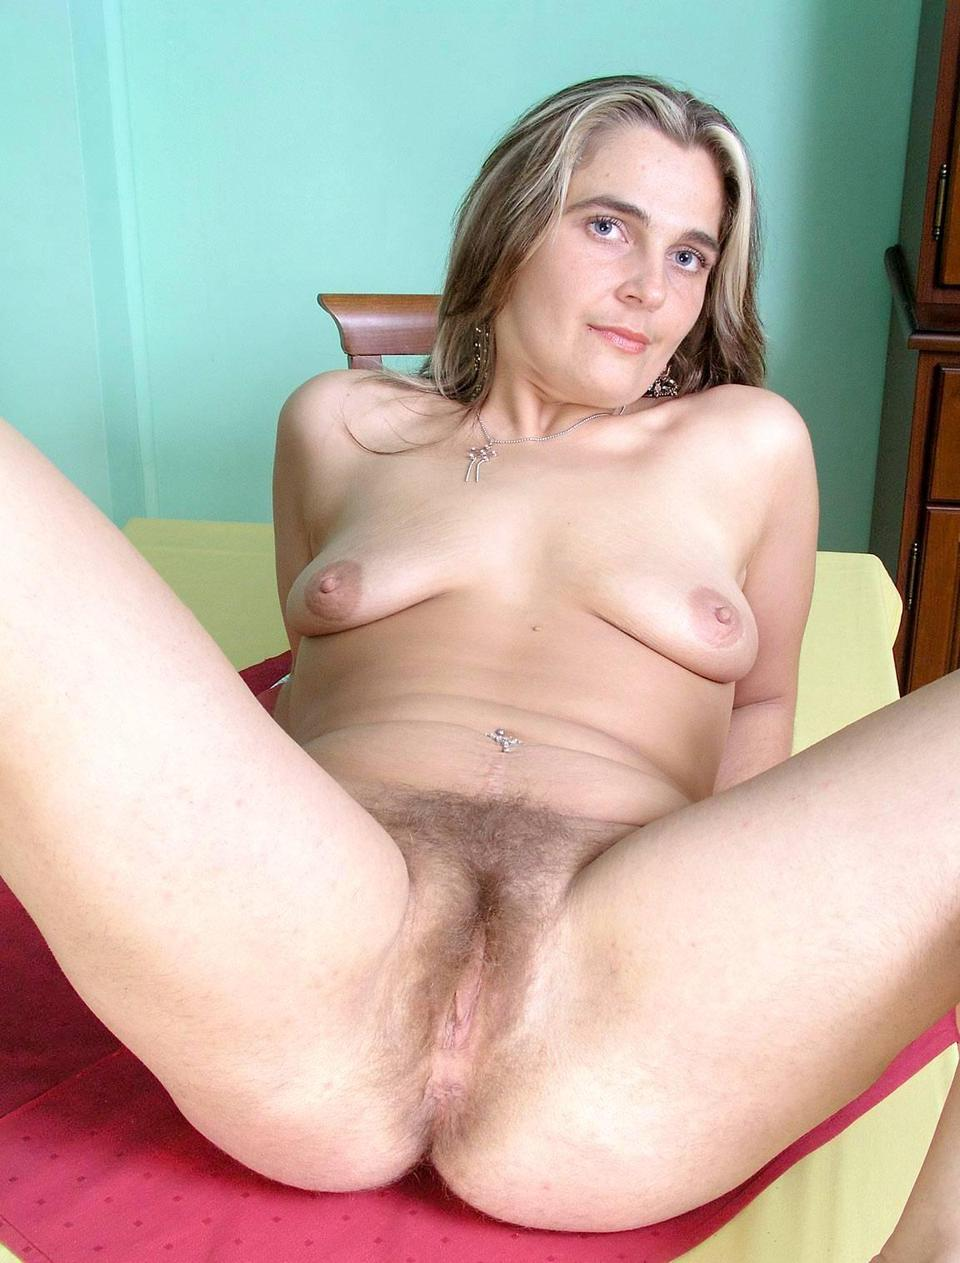 sexy females tottally nude